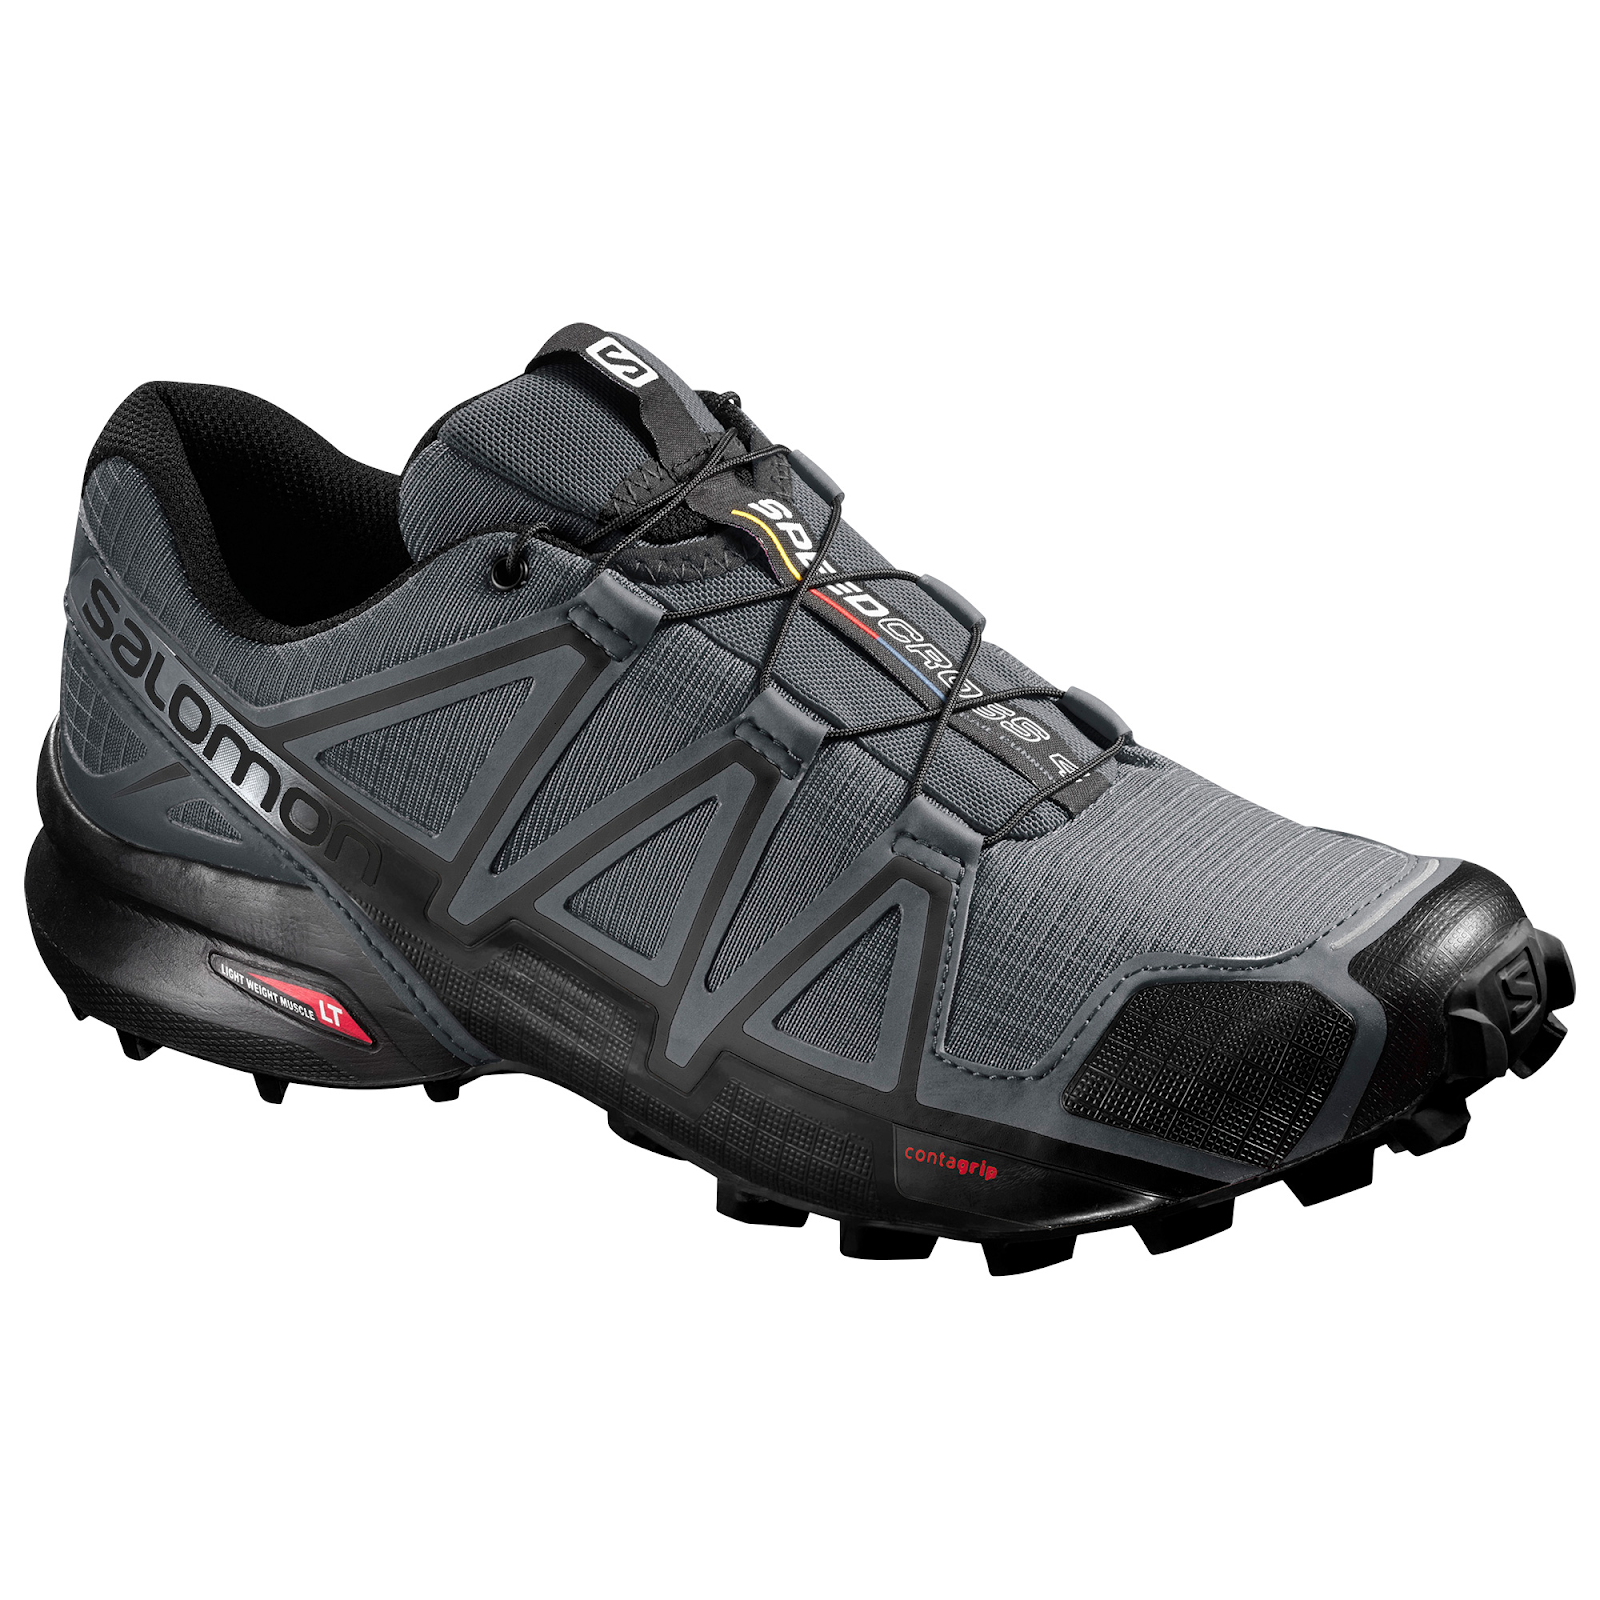 Salomon Speedcross 4 - Uses: Running, Walking, Everyday